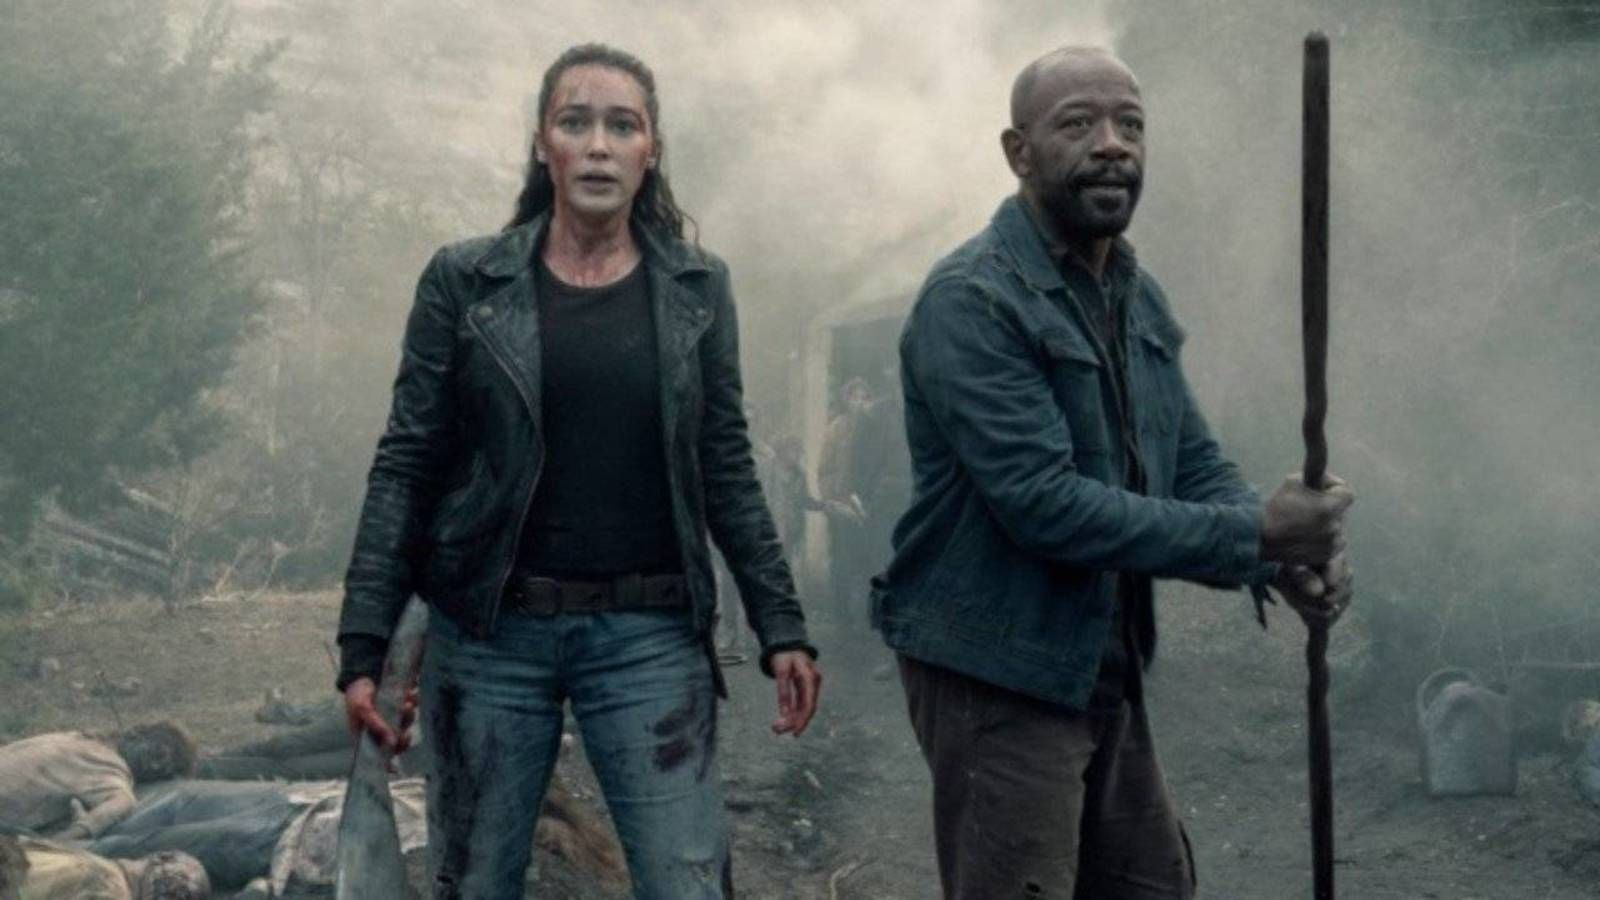 'Fear the Walking Dead' Estreno Temporada 5 - Temporada 6 Diferente